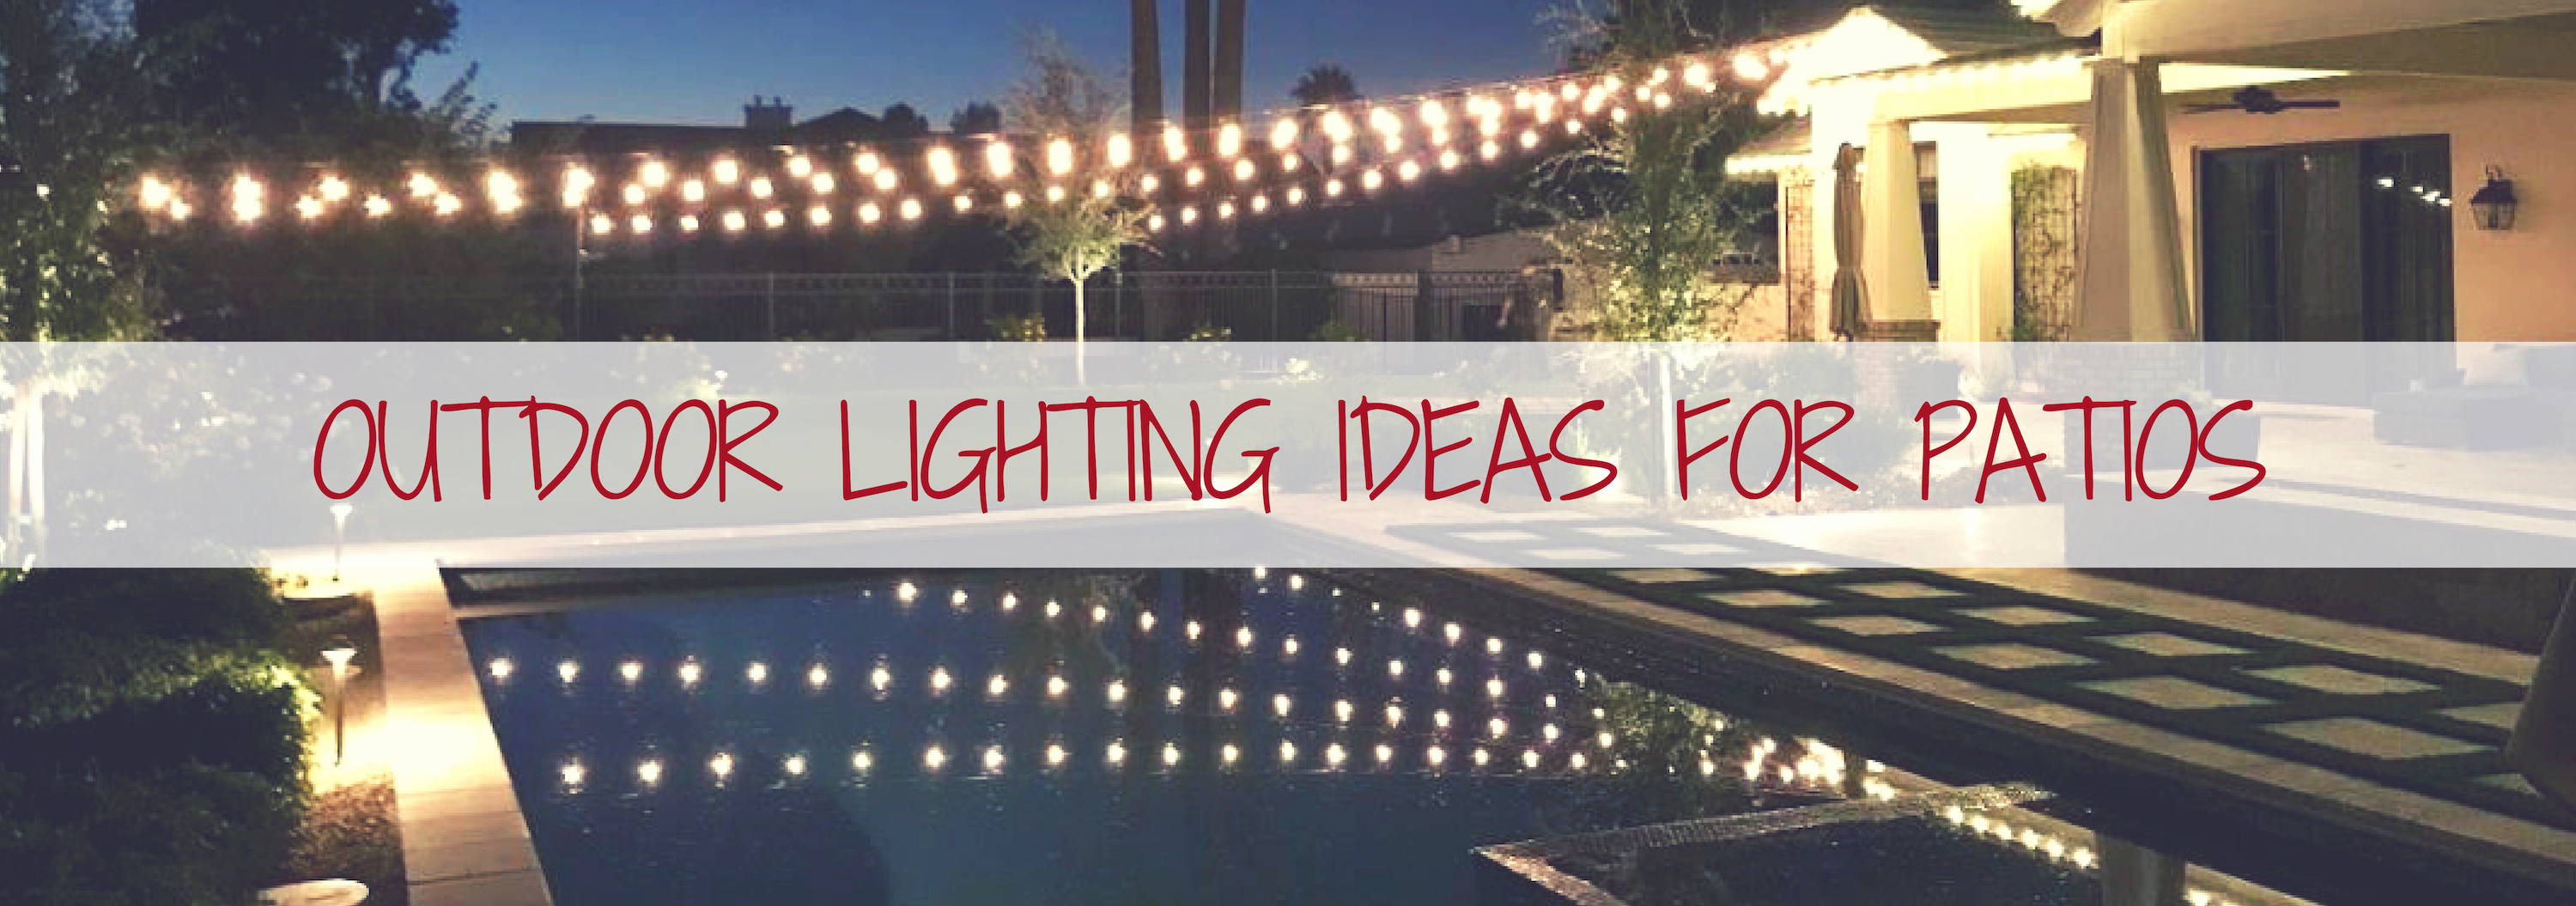 https stayofftheroof com outdoor lighting ideas for patios